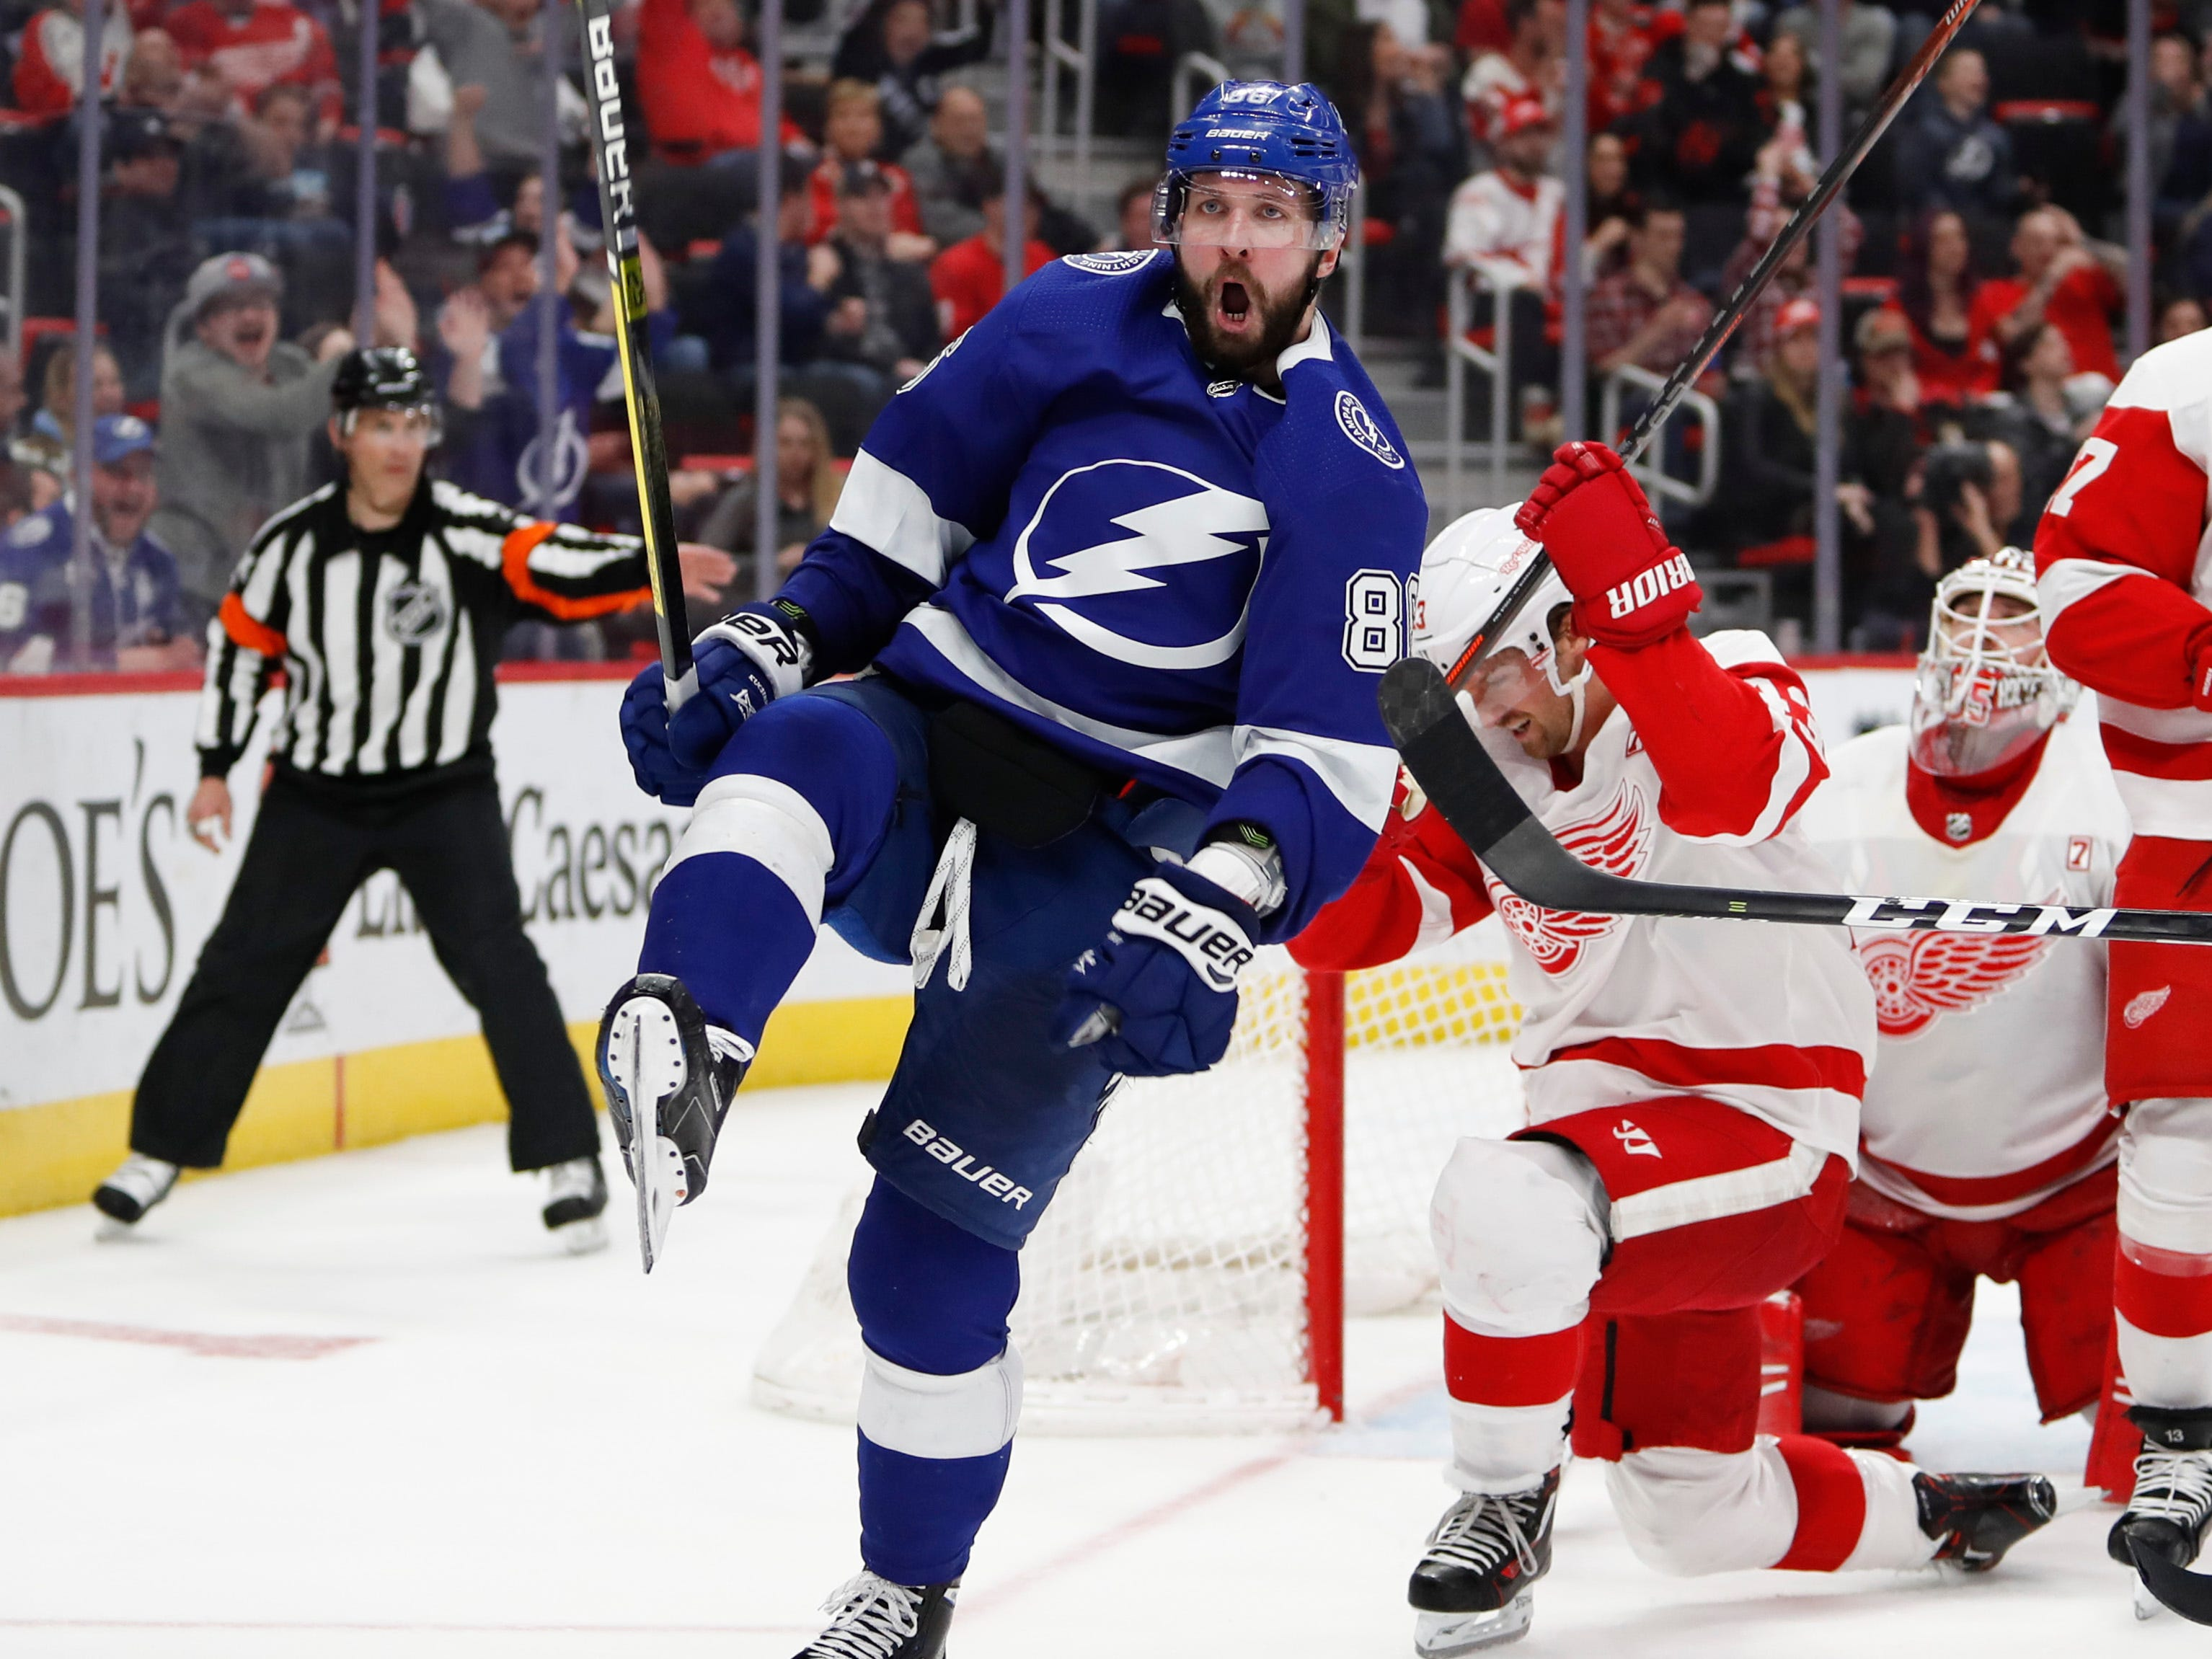 March 14: Tampa Bay RW Nikita Kucherov (86) celebrates after scoring the go-ahead goal against in the third period. The Lightning rallied for a 5-4 win over the Detroit Red Wings.